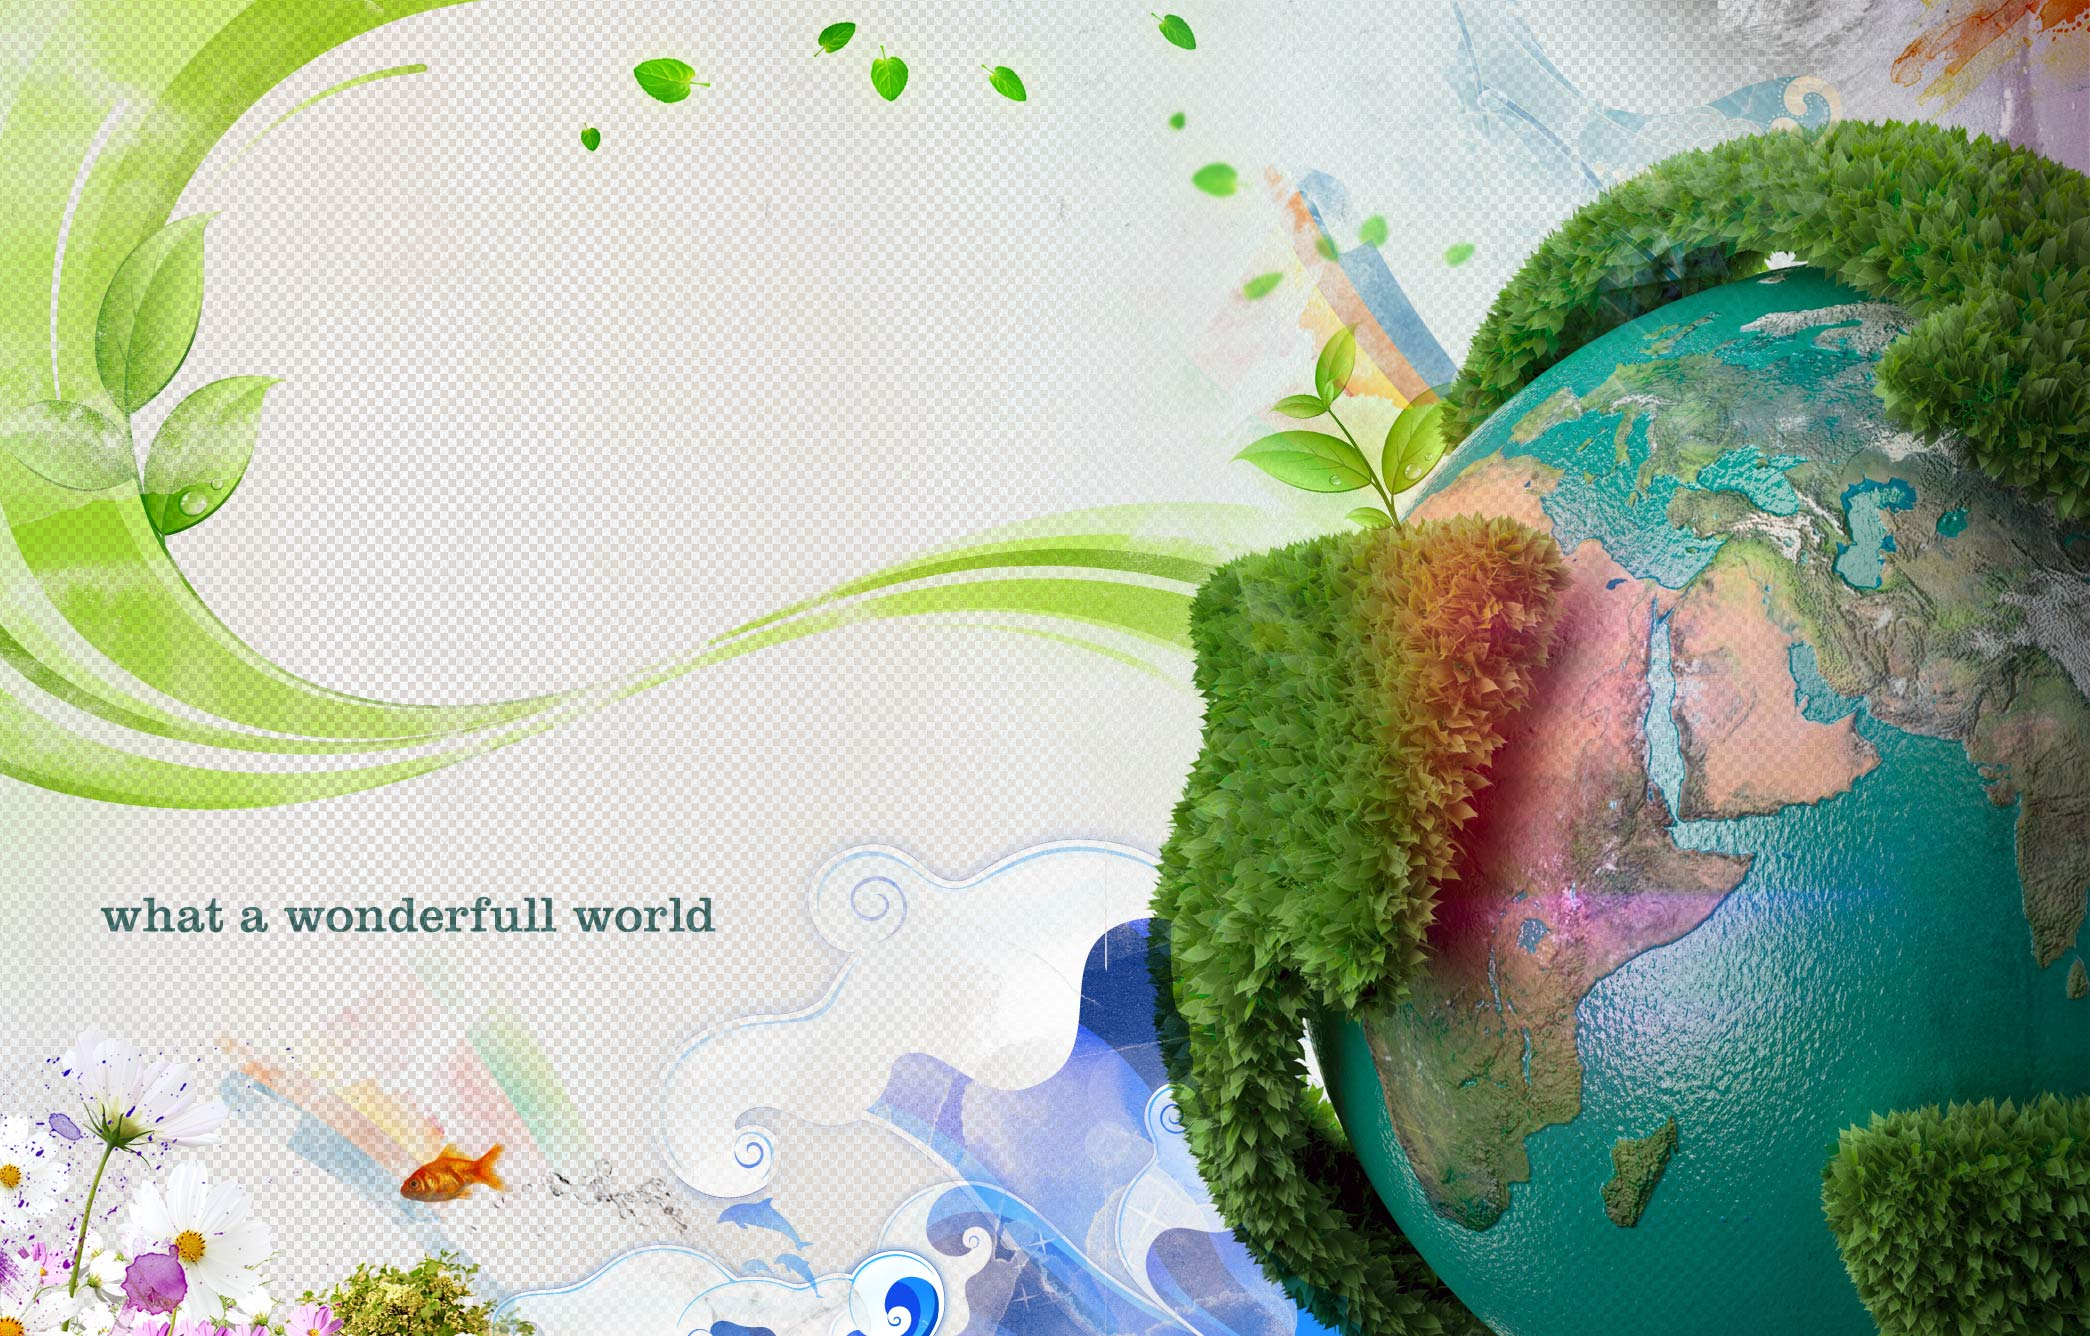 What a Wonderfull World Happy Earth Day